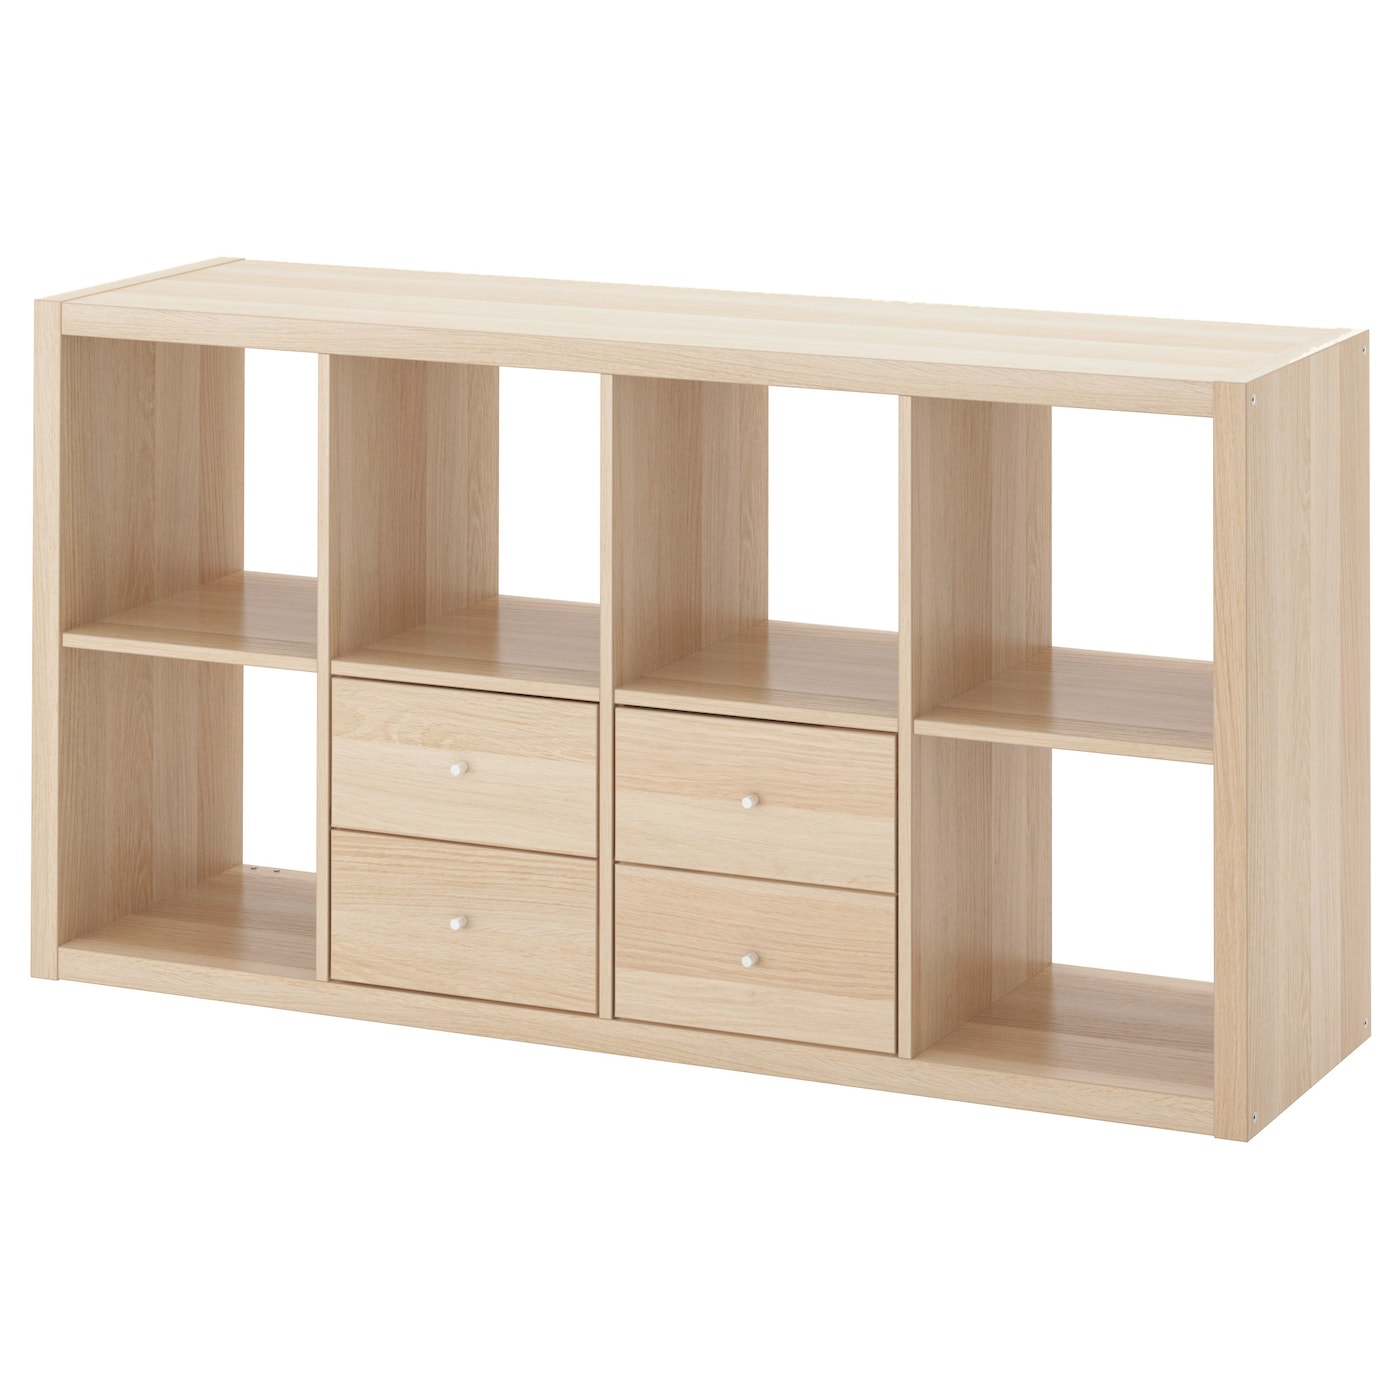 Kallax shelving unit with 2 inserts white stained oak for Meuble 5 cases ikea